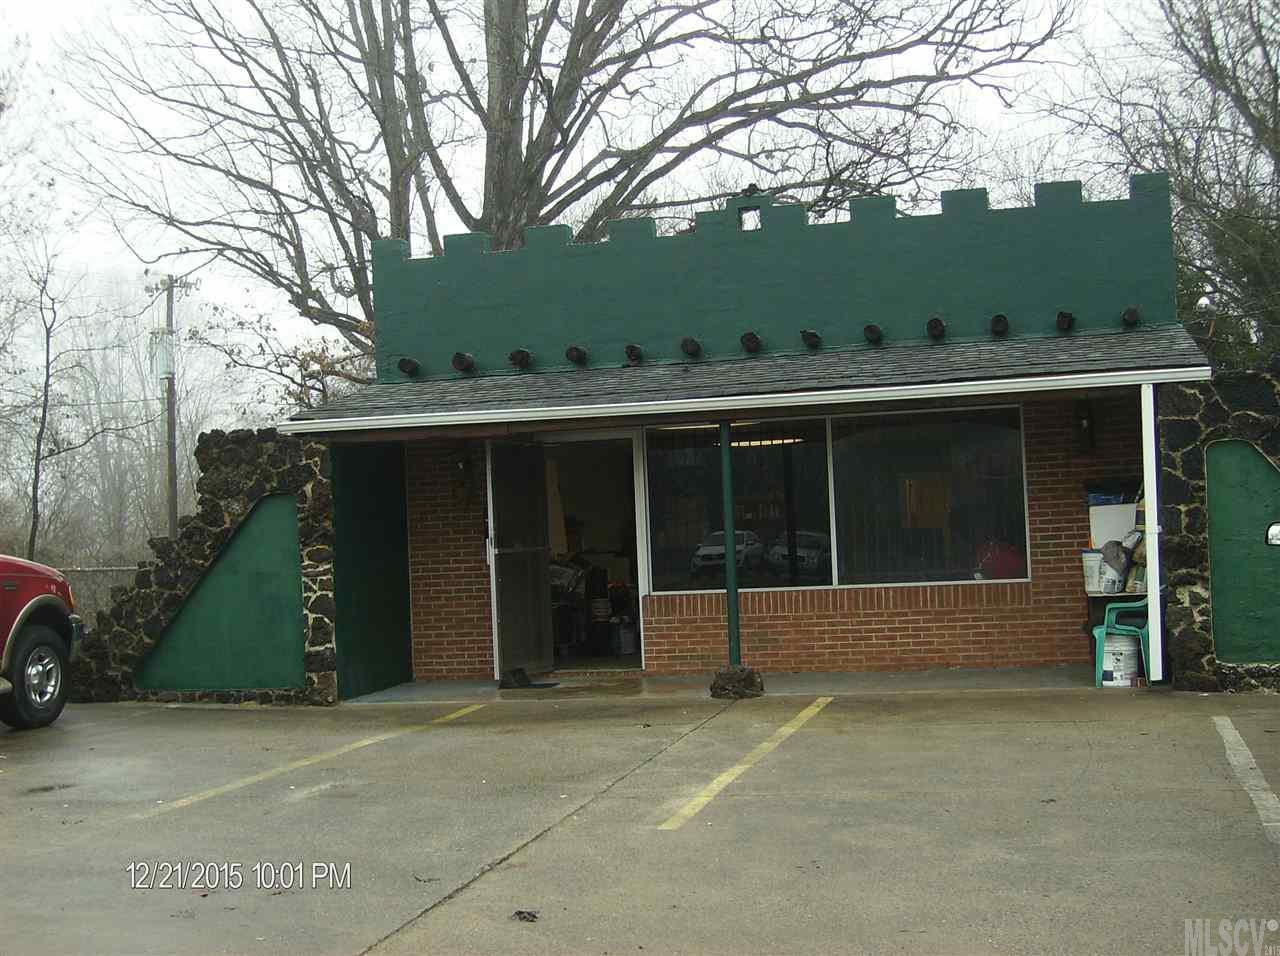 Commercial Property for Sale, ListingId:36685964, location: 233 11TH ST SW Hickory 28602